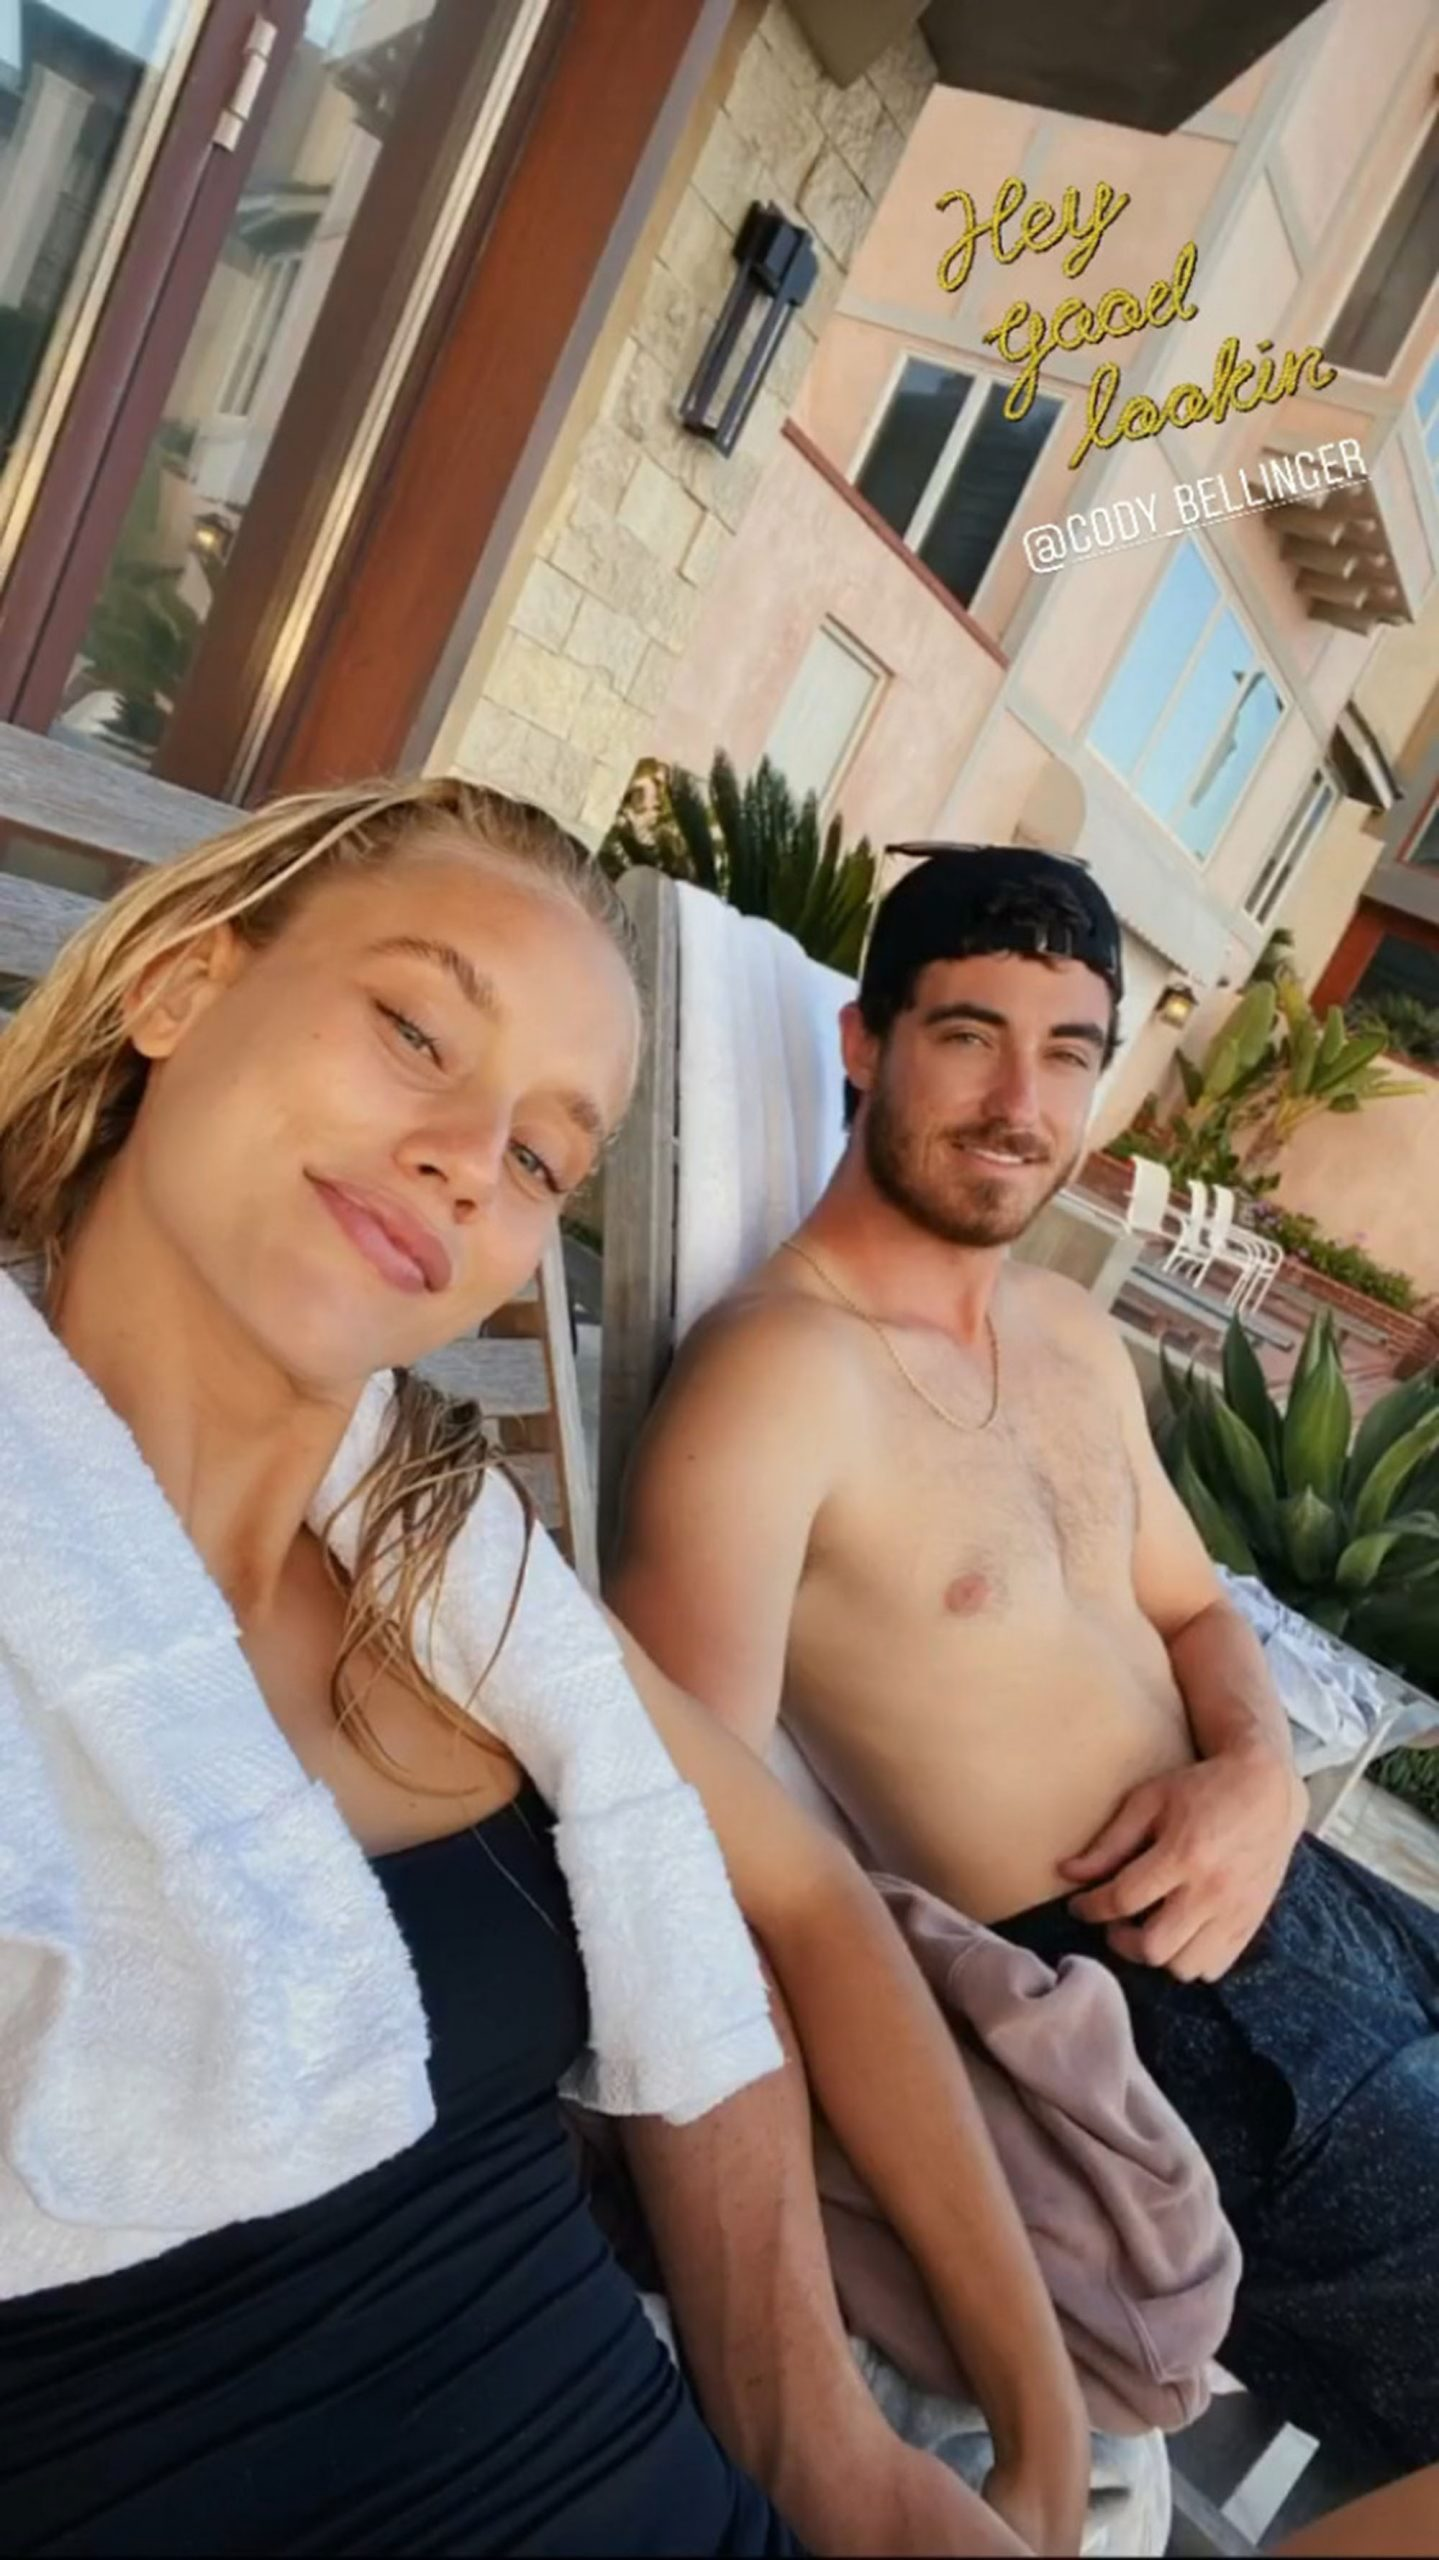 Chase Carter 5 Facts About Cody Bellinger's Girlfriend